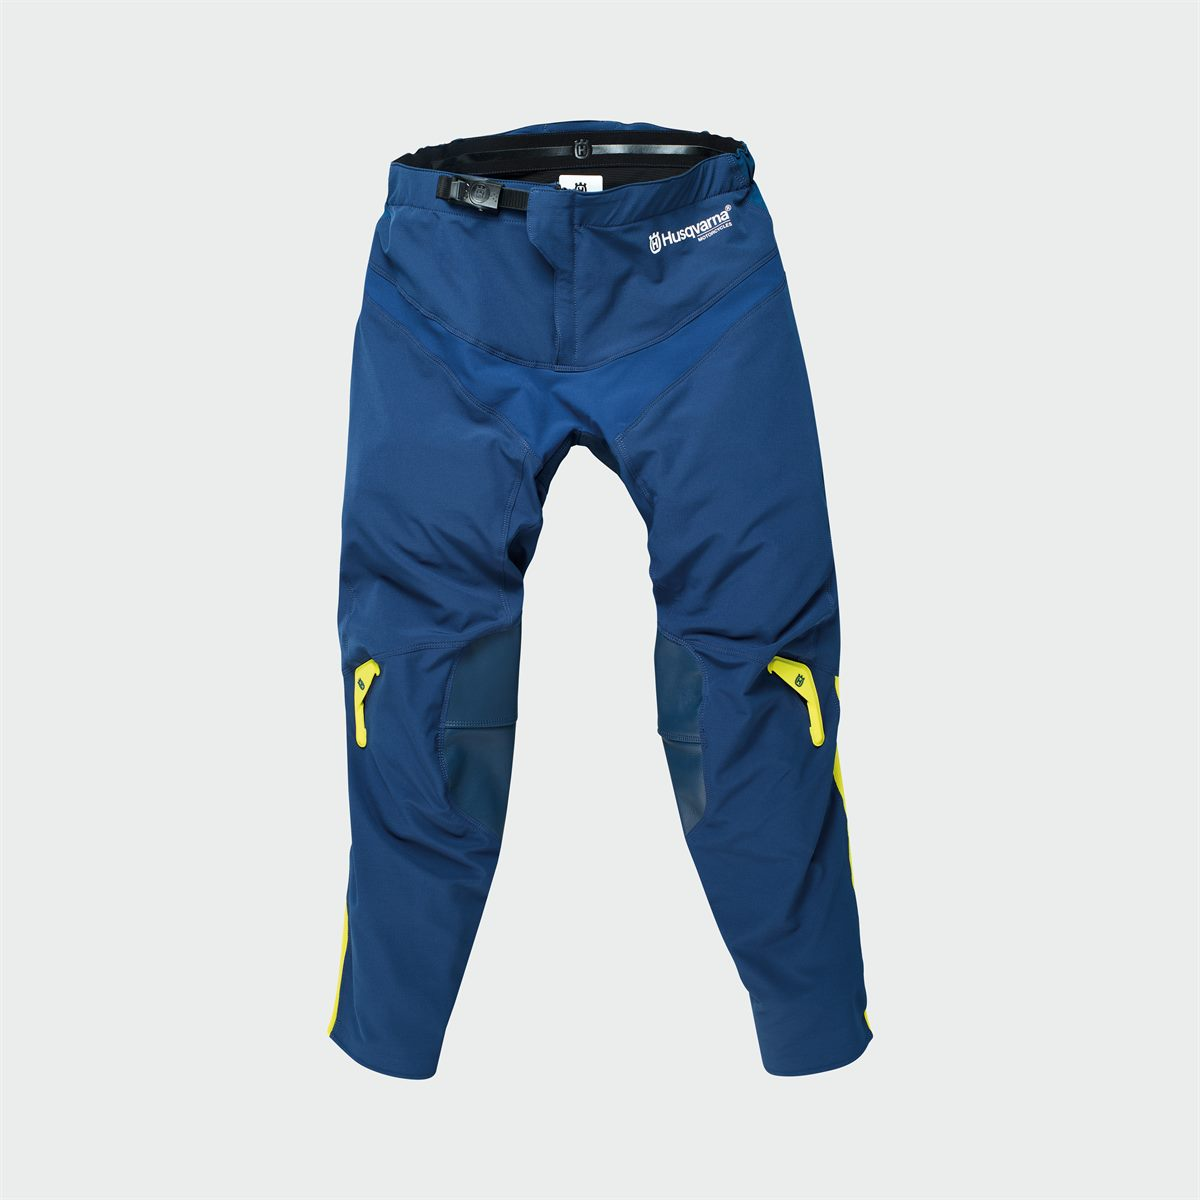 Husqvarna Motorcycles 2020 Functional Clothing Offroad Collection - GOTLAND PANTS